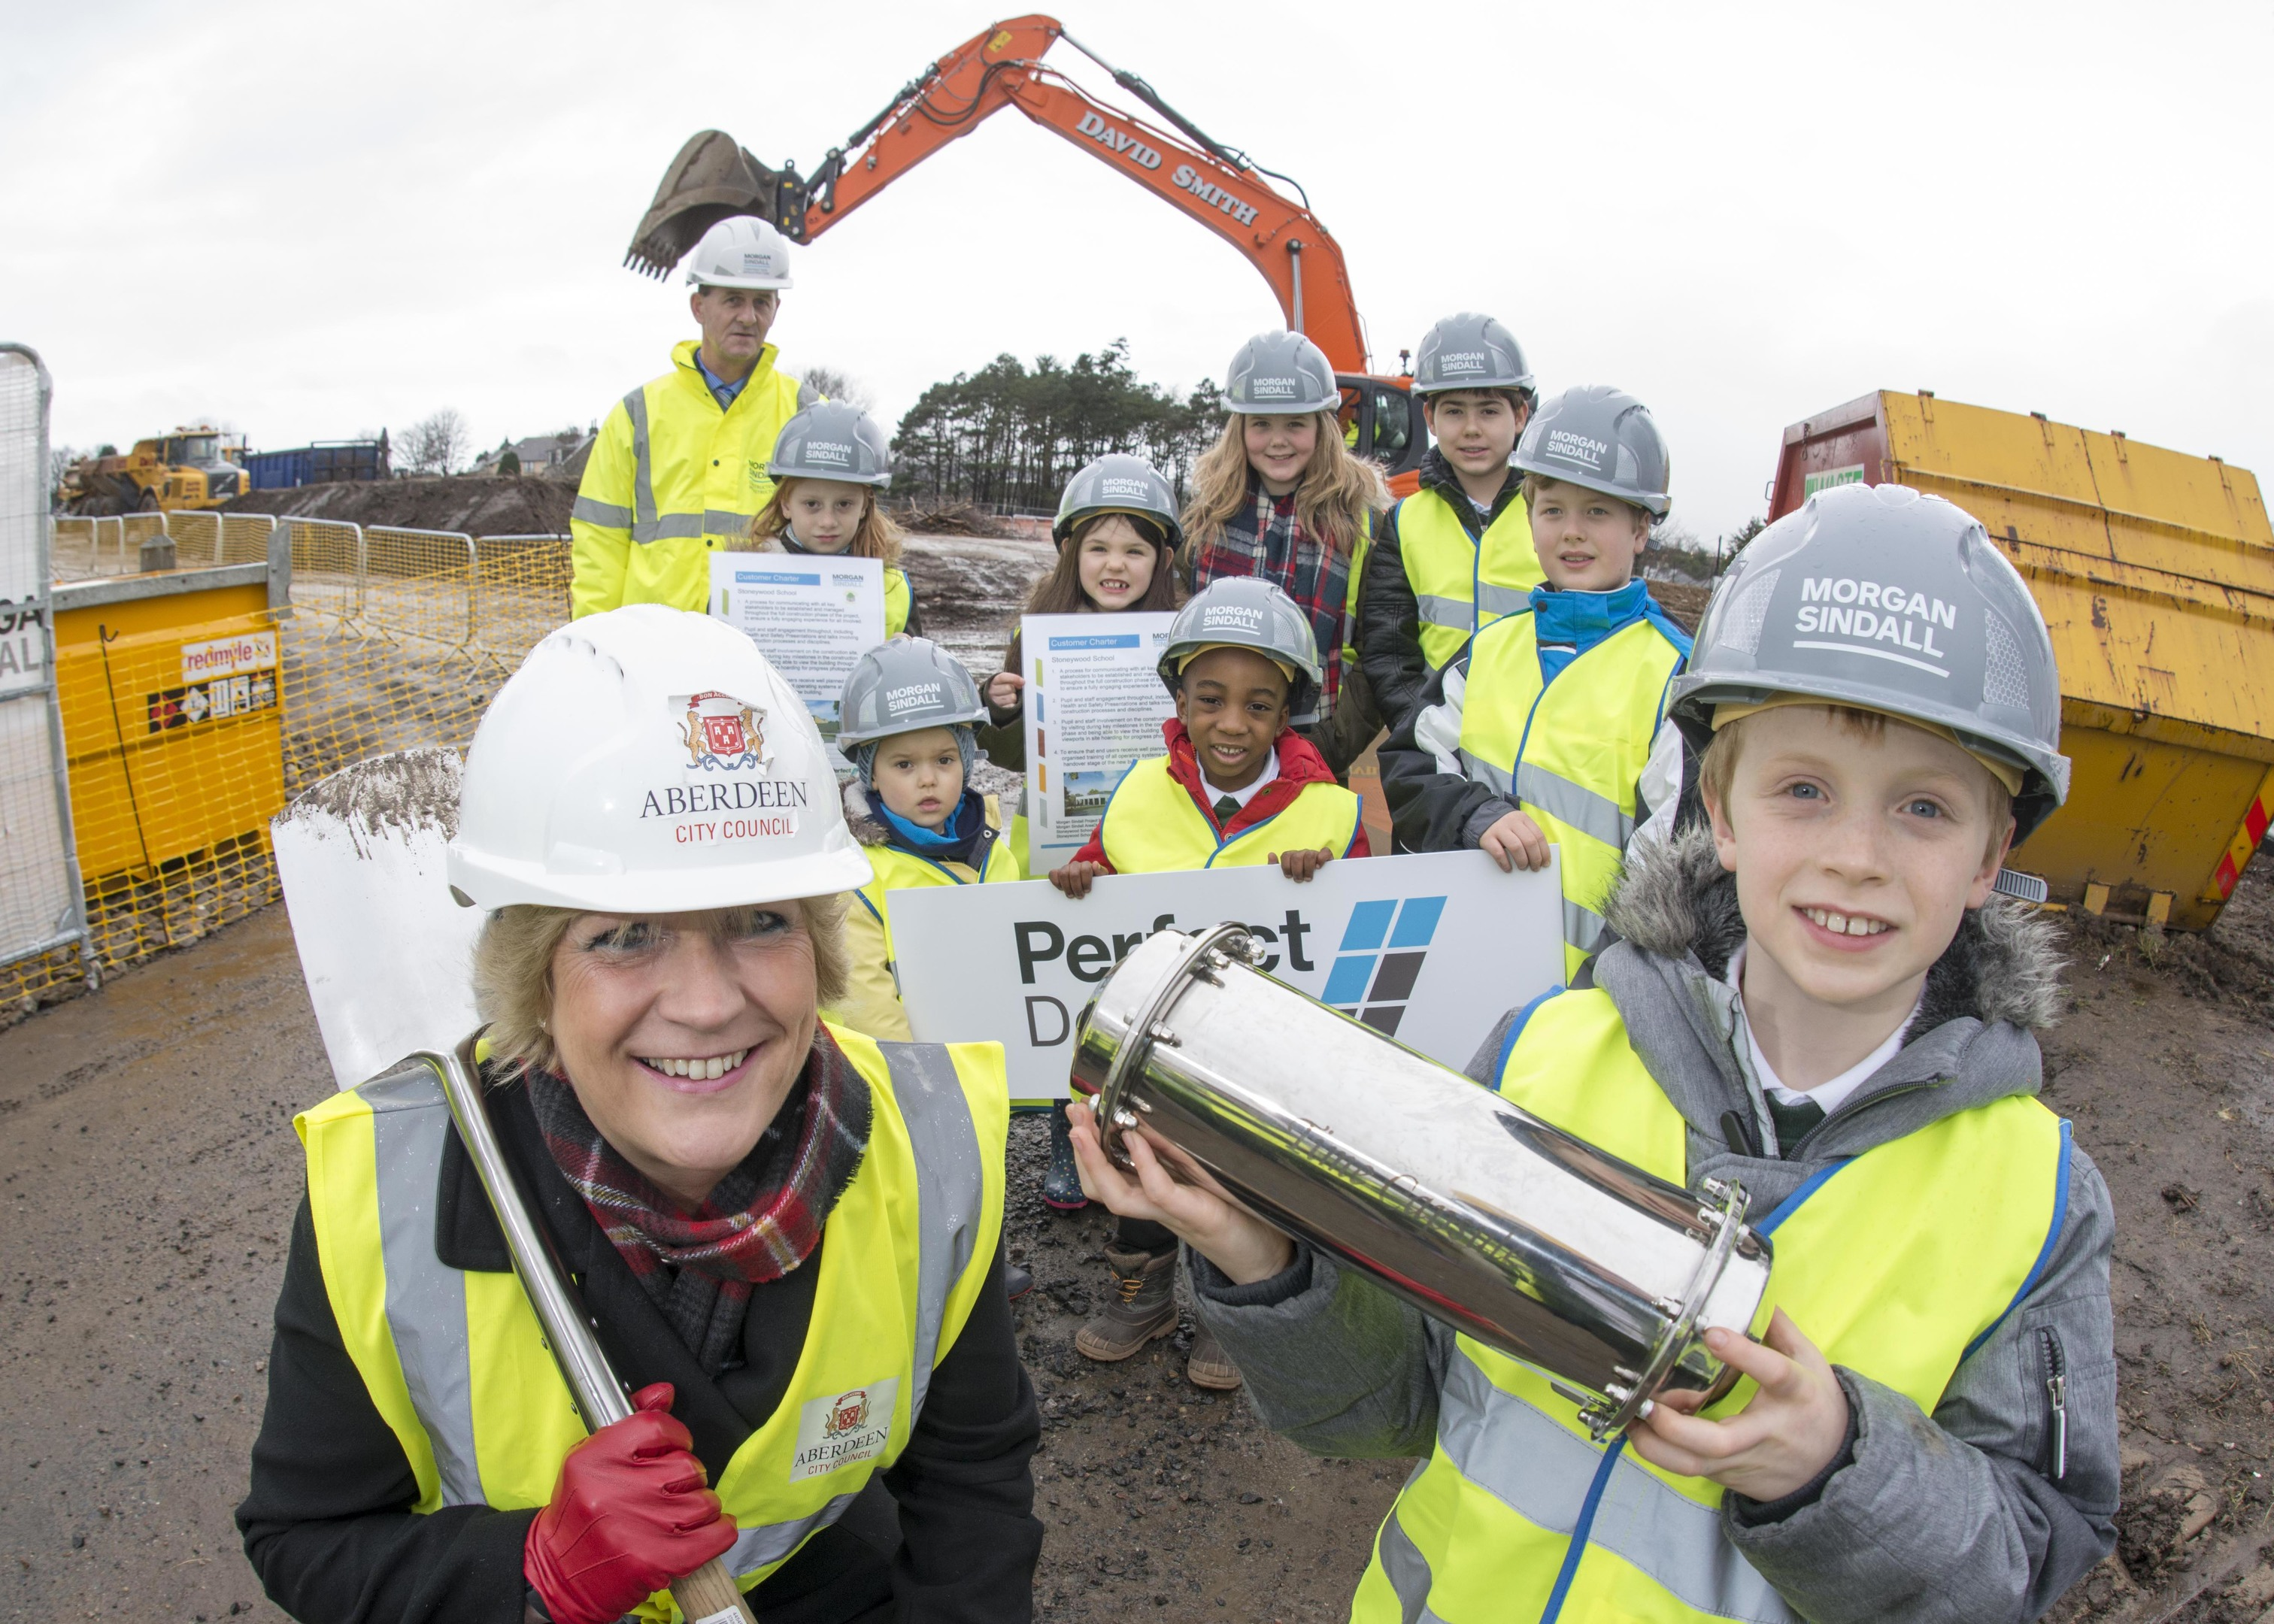 23/02/17 Ben Morrice ( 8YO pr3 ) with a time capsule with Councillor Angela Taylor with- Geoff Burton, Project Manager for Morgan Sindall and pupils from Stoneywood primarty School-  Karolina Oplatkowska (9YO pr4), Amber Cumming (6YO pr2 centre),Matilda Henderson (12 pr7 Scarf), Miron Csurilla (12 YO pr7 black jacket),  Callum Webb (10YO pr5 blue jacket), Kristian Sliga (3YO Nursery at front), Abdullah Ismail (5YO pr1) A sod-cutting ceremony will mark the official commencement of work on the new £13 million Stoneywood School. The new school, built on the site of fire-gutted Bankhead Academy will house 434 pupils attending the existing Stoneywood School as well as a nursery. The new state-of-the-art primary school is due for completion by Easter next year.